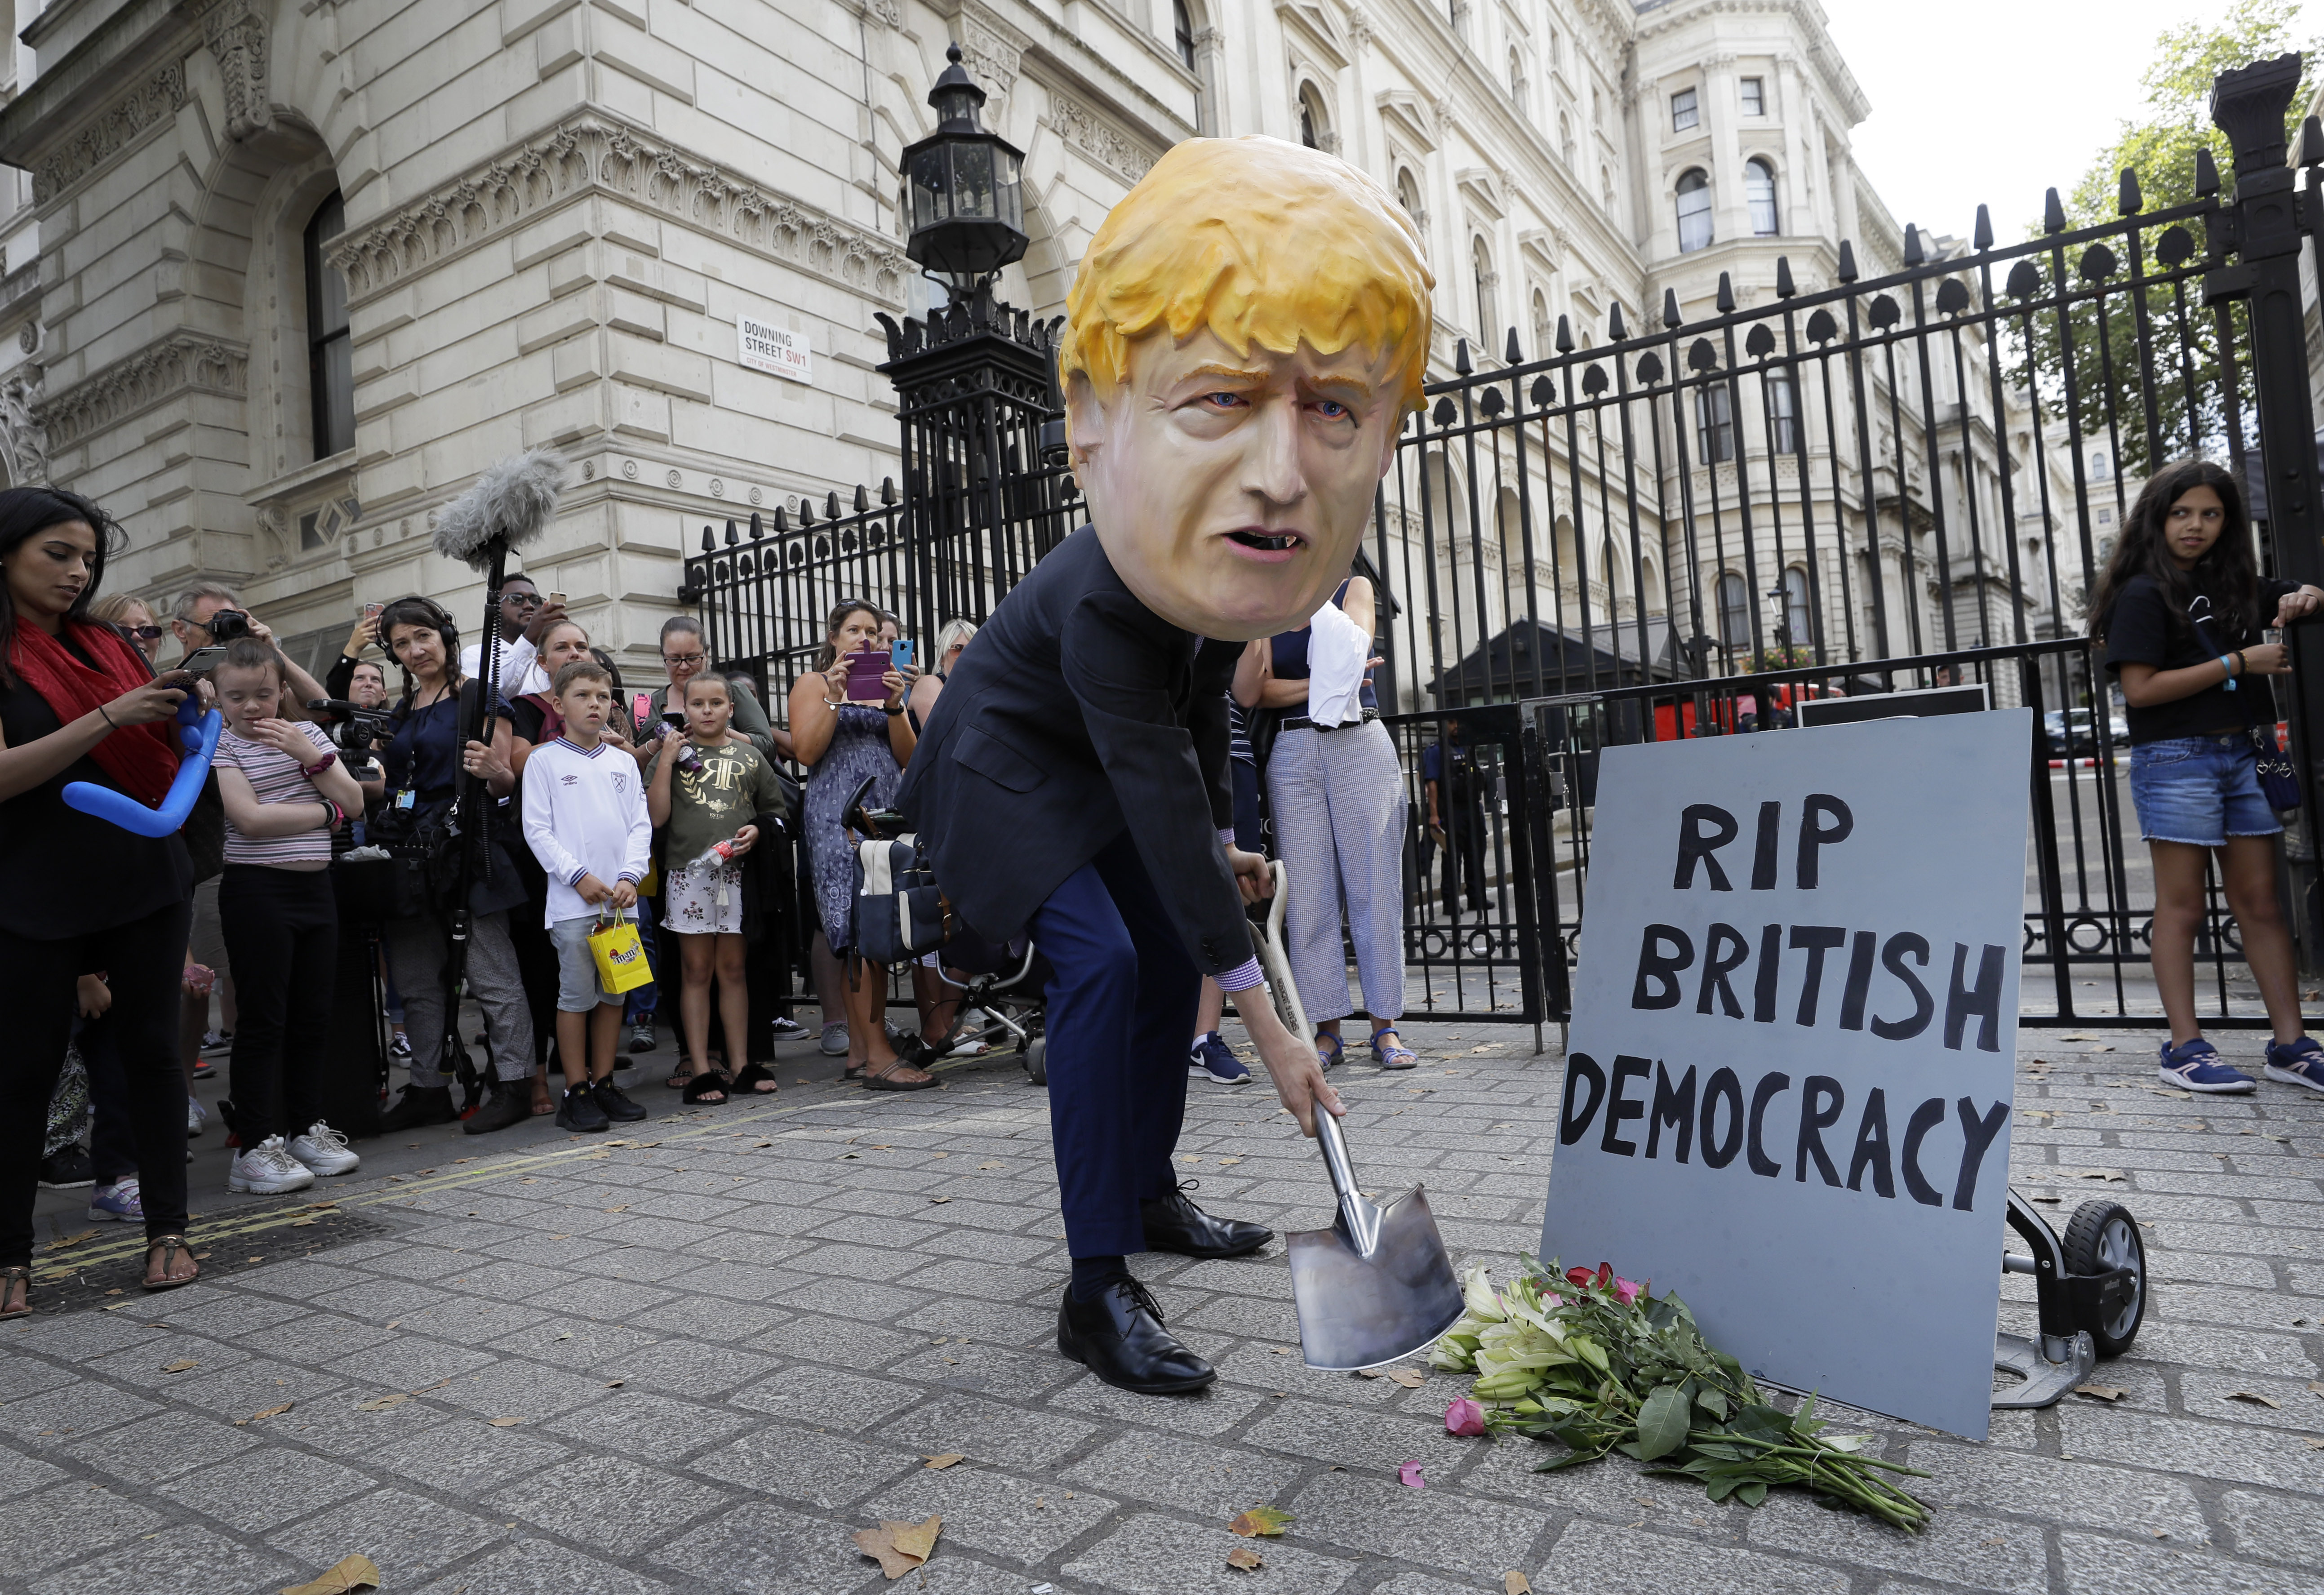 A man in a giant Boris Johnson 'head' digs a grave at the foot of a pretend tombstone outside Downing Street in London, Wednesday, Aug. 28, 2019. Britain's Queen Elizabeth II has approved the U.K. government's request to suspend Parliament amid a growing crisis over Brexit. Prime Minister Boris Johnson spoke to the queen on Wednesday to request an end to the current Parliament session in September.(AP Photo/Kirsty Wigglesworth)